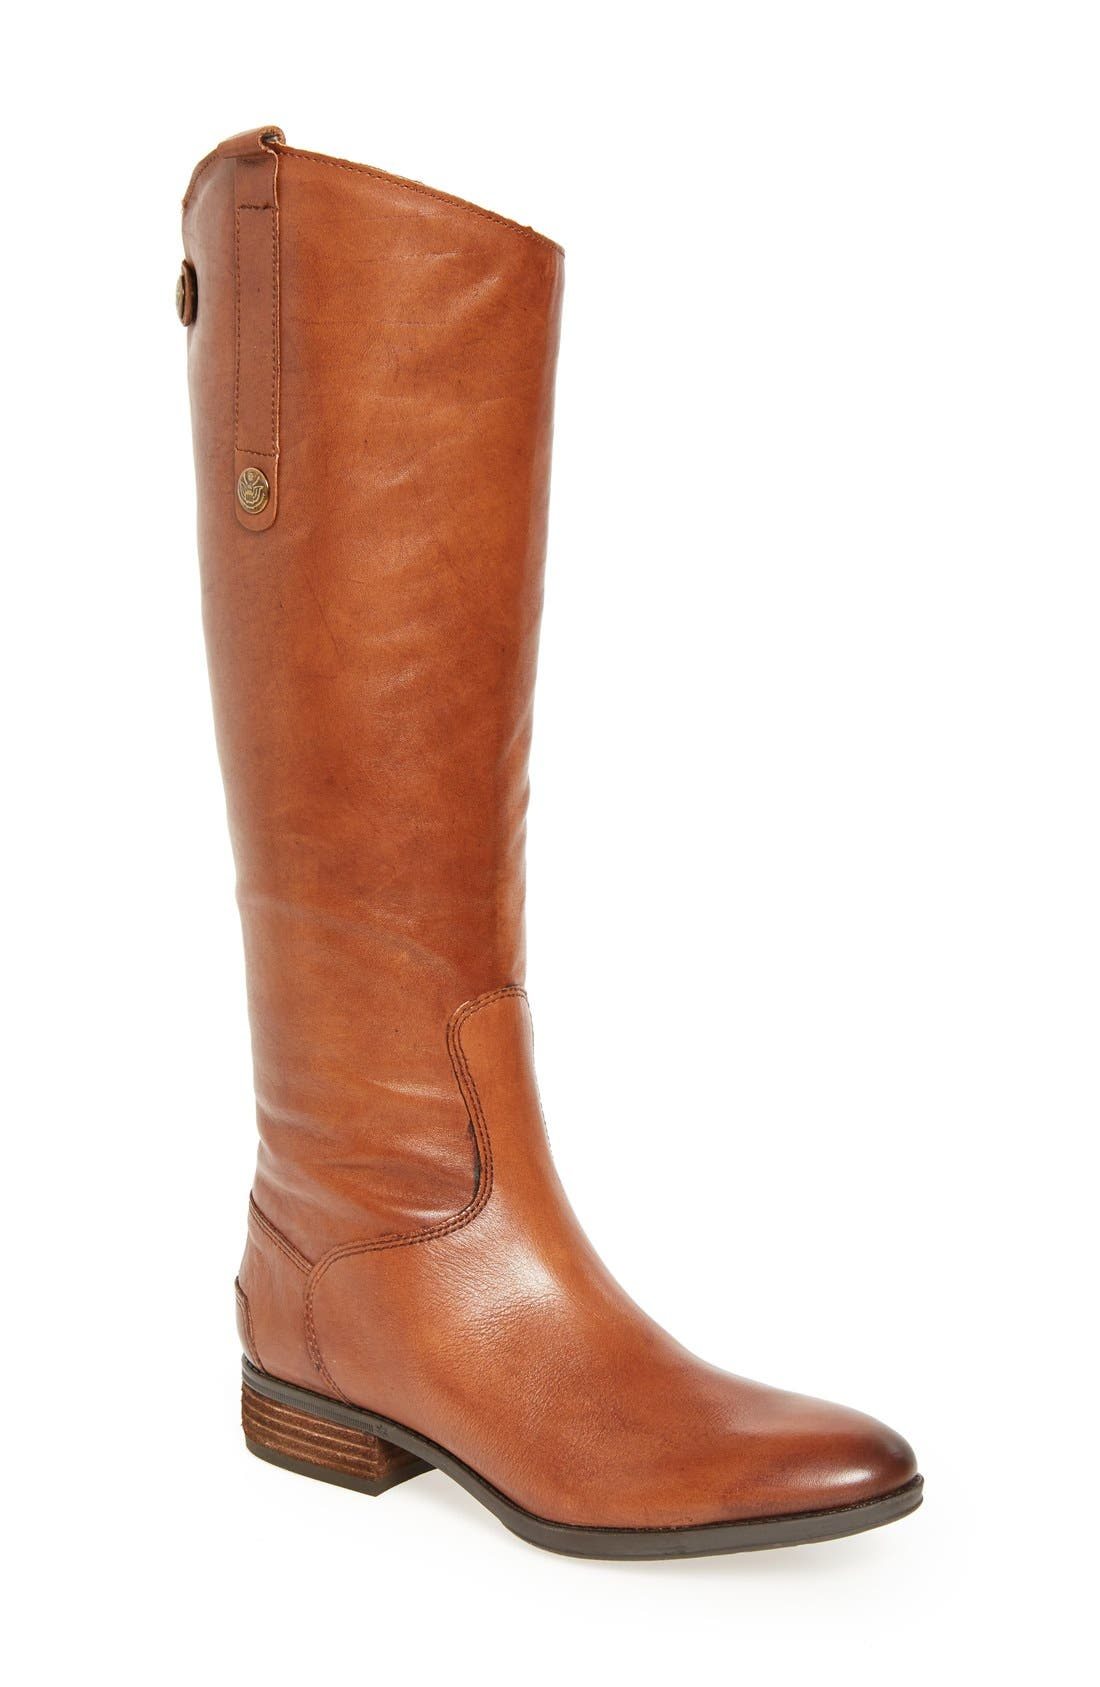 Main Image - Sam Edelman 'Penny' Boot (Women)